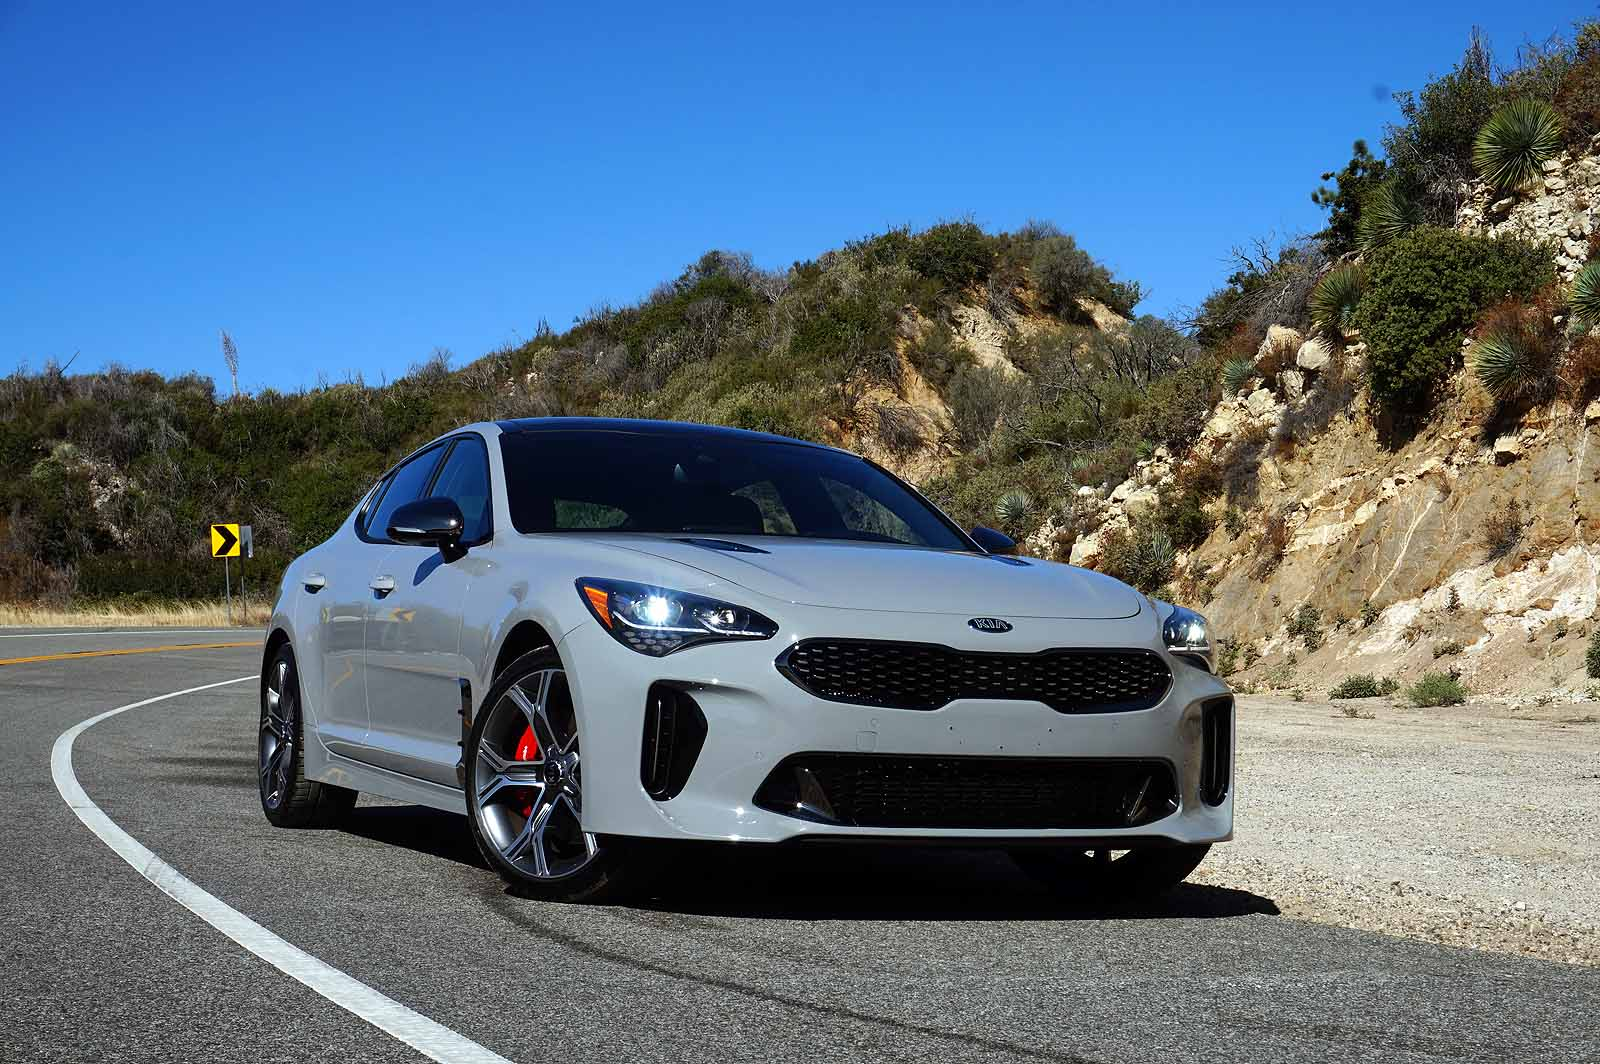 2018 kia stinger review kia stinger gt review. Black Bedroom Furniture Sets. Home Design Ideas